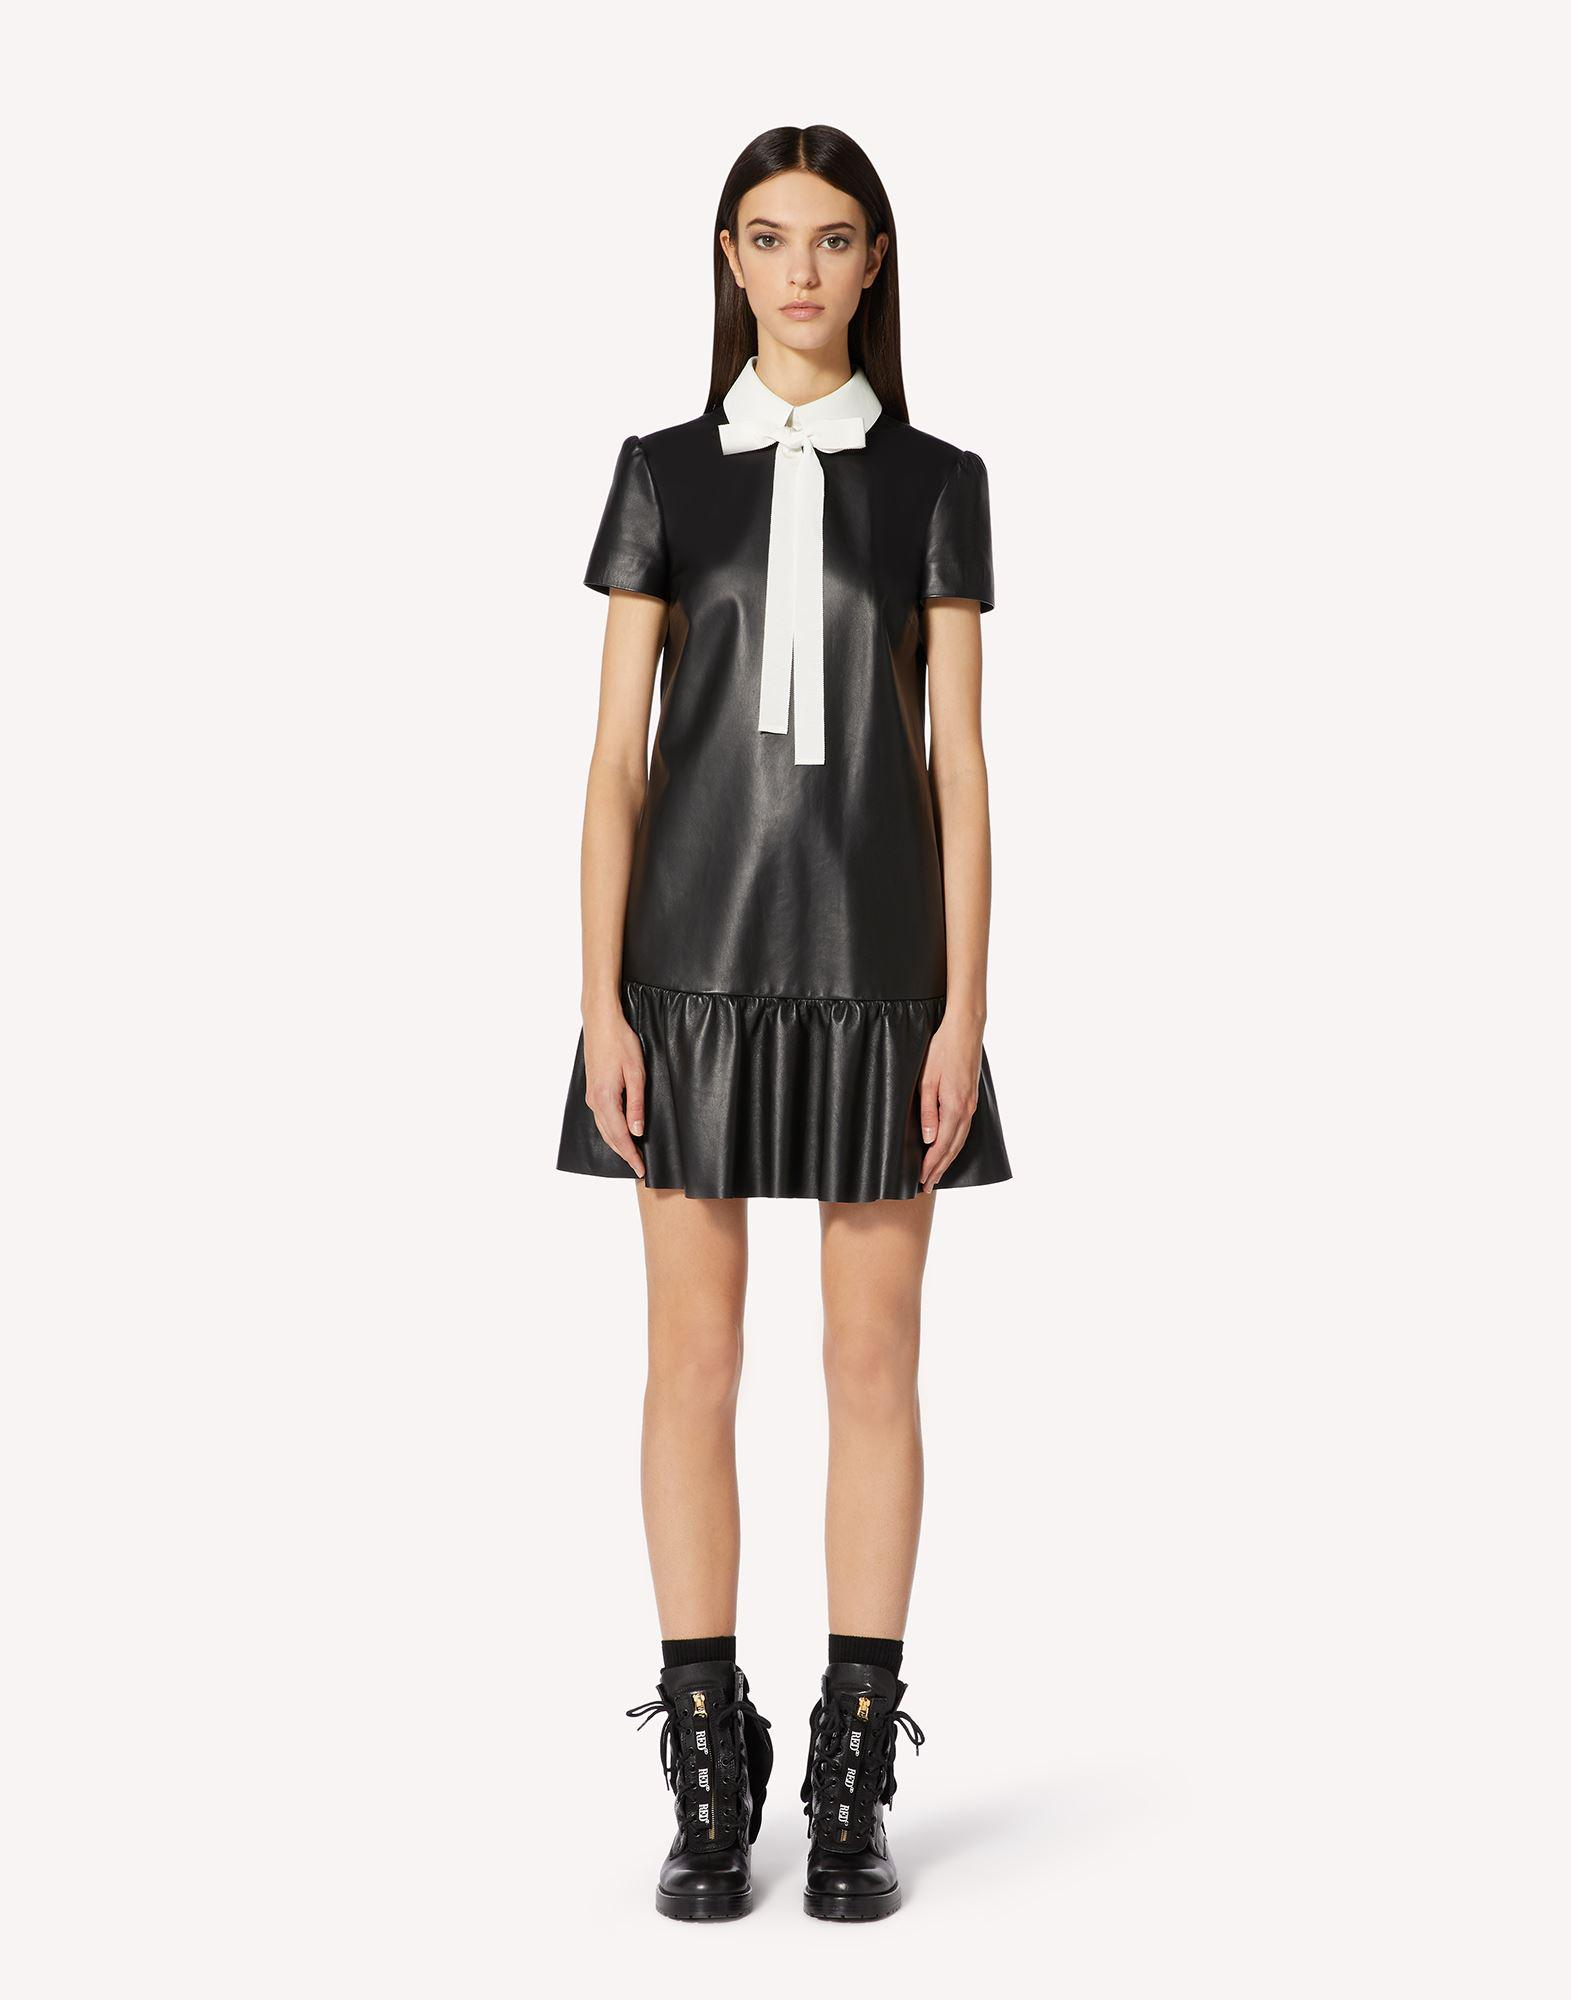 NAPPA LEATHER DRESS WITH COLLAR DETAIL